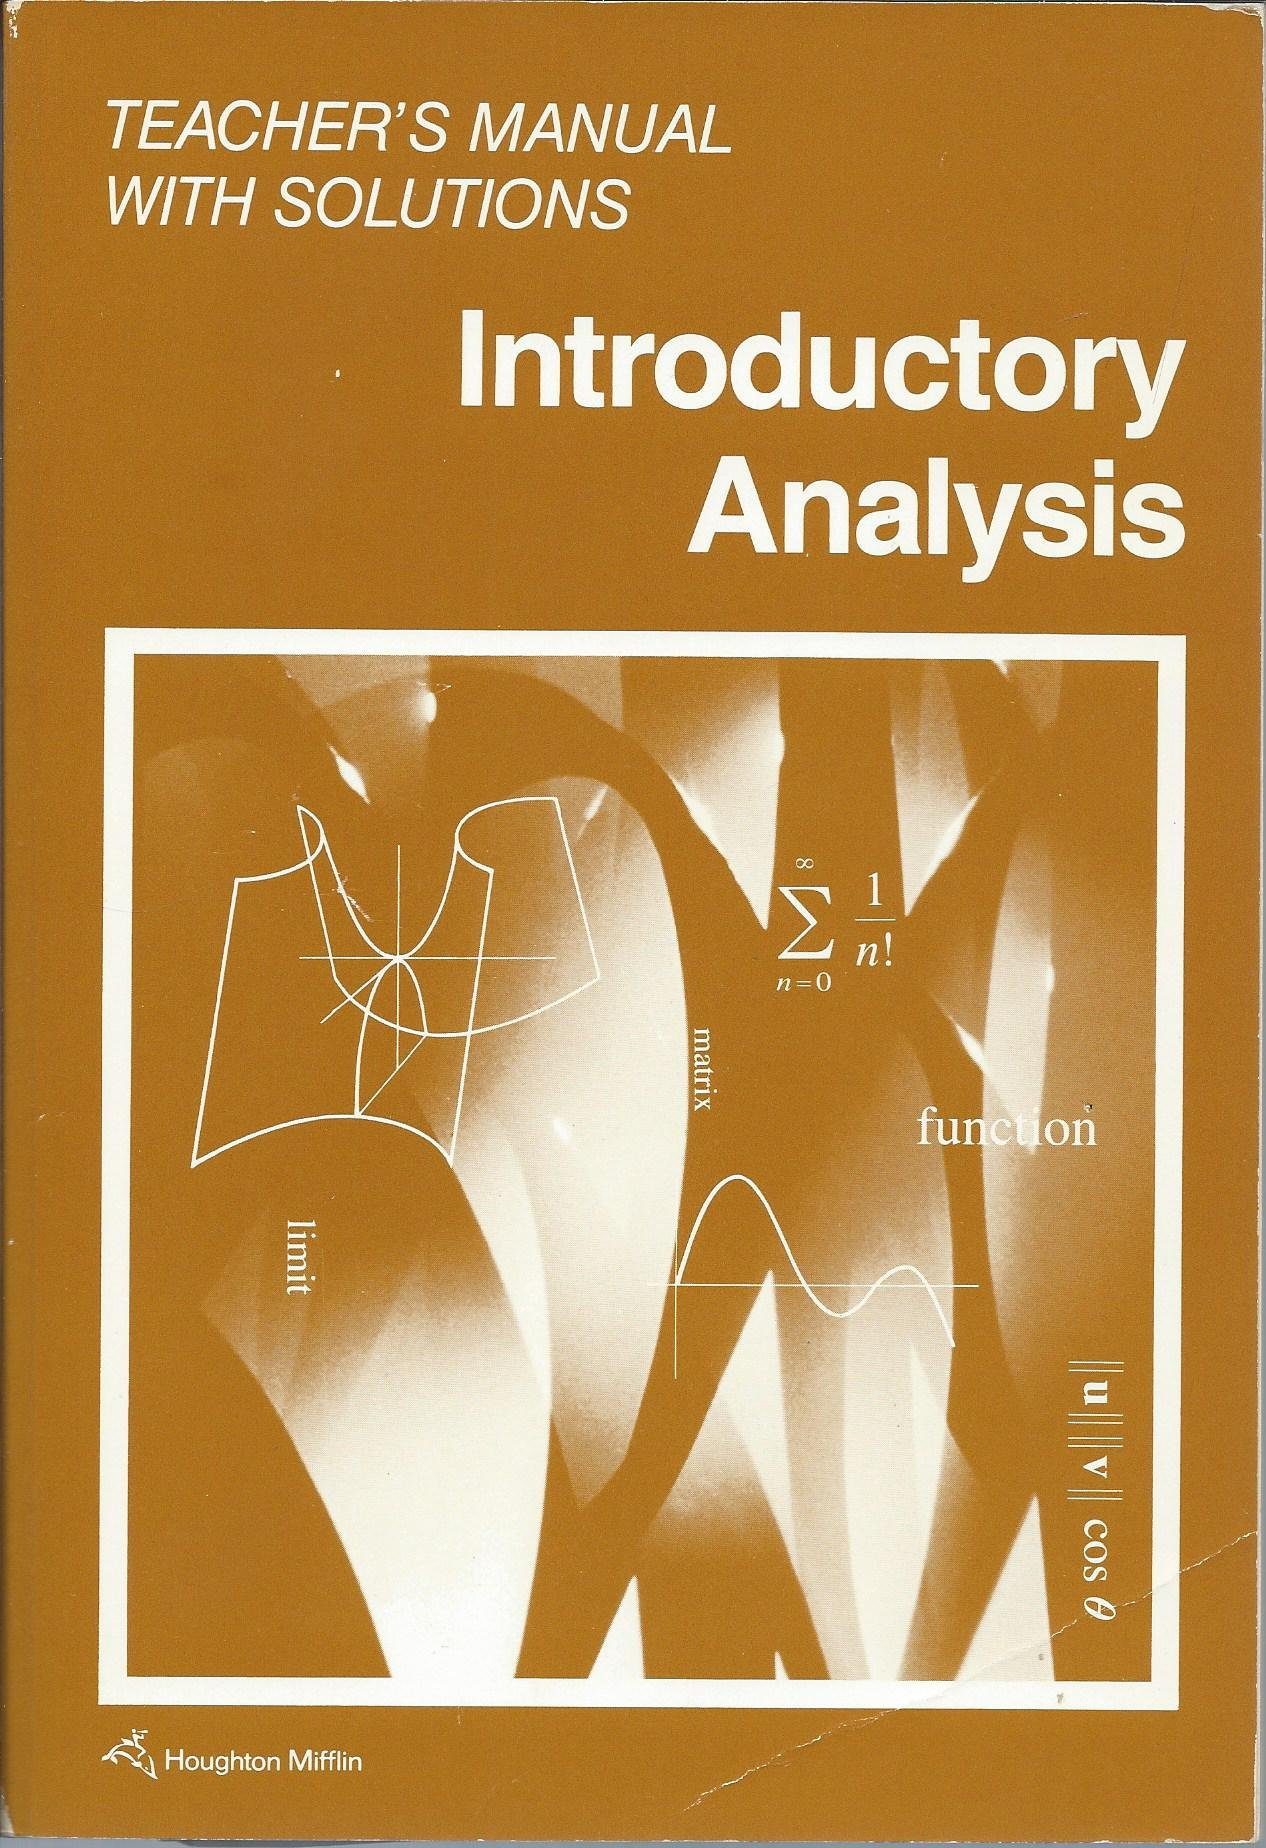 Introductory Analysis (Teacher's Manual with Solutions): Graham, Myers  Dolciani Sorgenfrey: 9780395526170: Amazon.com: Books